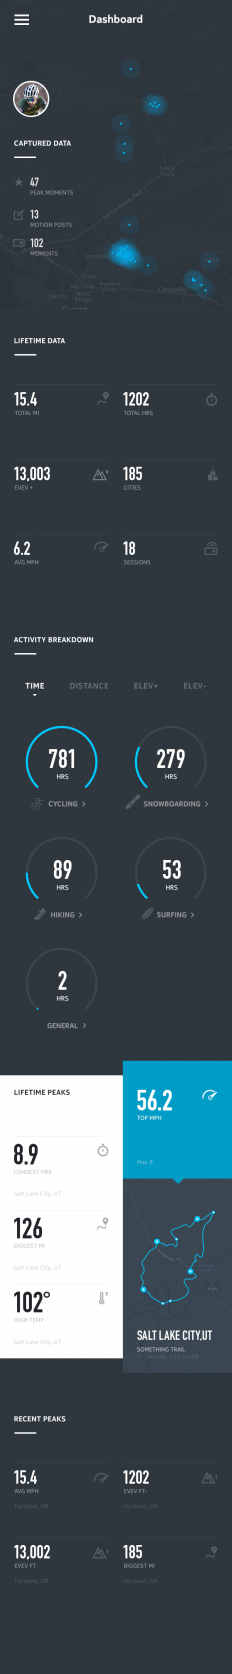 DASHBOARD_FULL.png by Ben Mingo